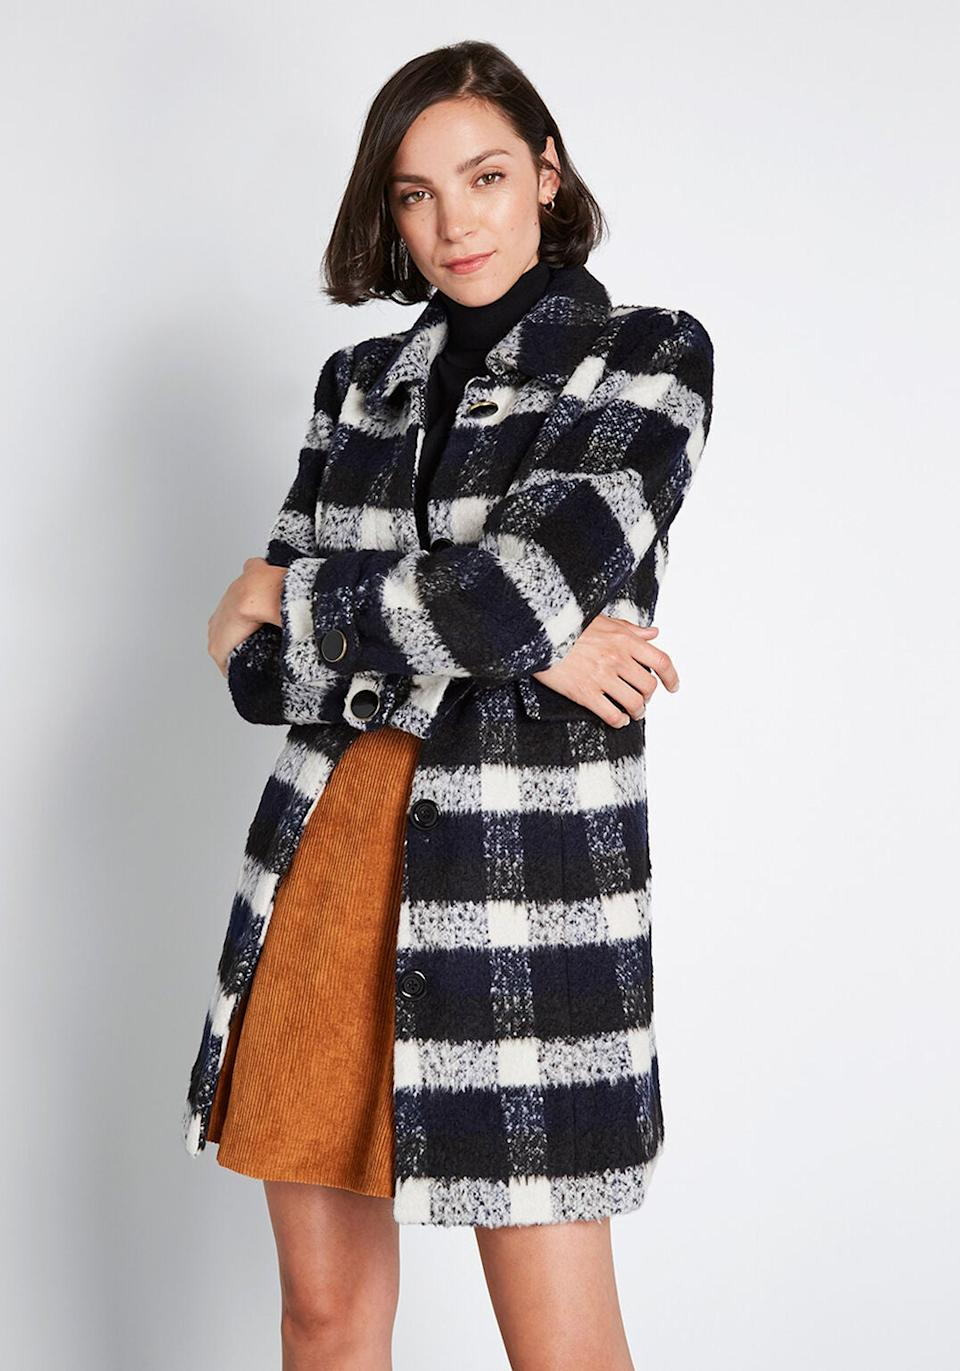 """<h3><a href=""""https://www.modcloth.com/"""" rel=""""nofollow noopener"""" target=""""_blank"""" data-ylk=""""slk:Modcloth"""" class=""""link rapid-noclick-resp"""">Modcloth</a> </h3><br><br><strong>Dates: </strong>Now - December 27<br><strong>Sale: </strong>An additional <a href=""""https://www.modcloth.com/shop/newarrivals"""" rel=""""nofollow noopener"""" target=""""_blank"""" data-ylk=""""slk:30% off select new arrivals"""" class=""""link rapid-noclick-resp"""">30% off select new arrivals</a>; up to <a href=""""https://www.modcloth.com/shop/outlet"""" rel=""""nofollow noopener"""" target=""""_blank"""" data-ylk=""""slk:65% off select items"""" class=""""link rapid-noclick-resp"""">65% off select items</a><br><strong>Promo Code: </strong>None — discounts applied in cart<br><br>This indie-minded site always contains a surprising wealth of stylish and affordable finds, but their last-stop shop, <a href=""""https://www.modcloth.com/shop/outlet"""" rel=""""nofollow noopener"""" target=""""_blank"""" data-ylk=""""slk:Mod Outlet"""" class=""""link rapid-noclick-resp"""">Mod Outlet</a>, is their best kept secret."""